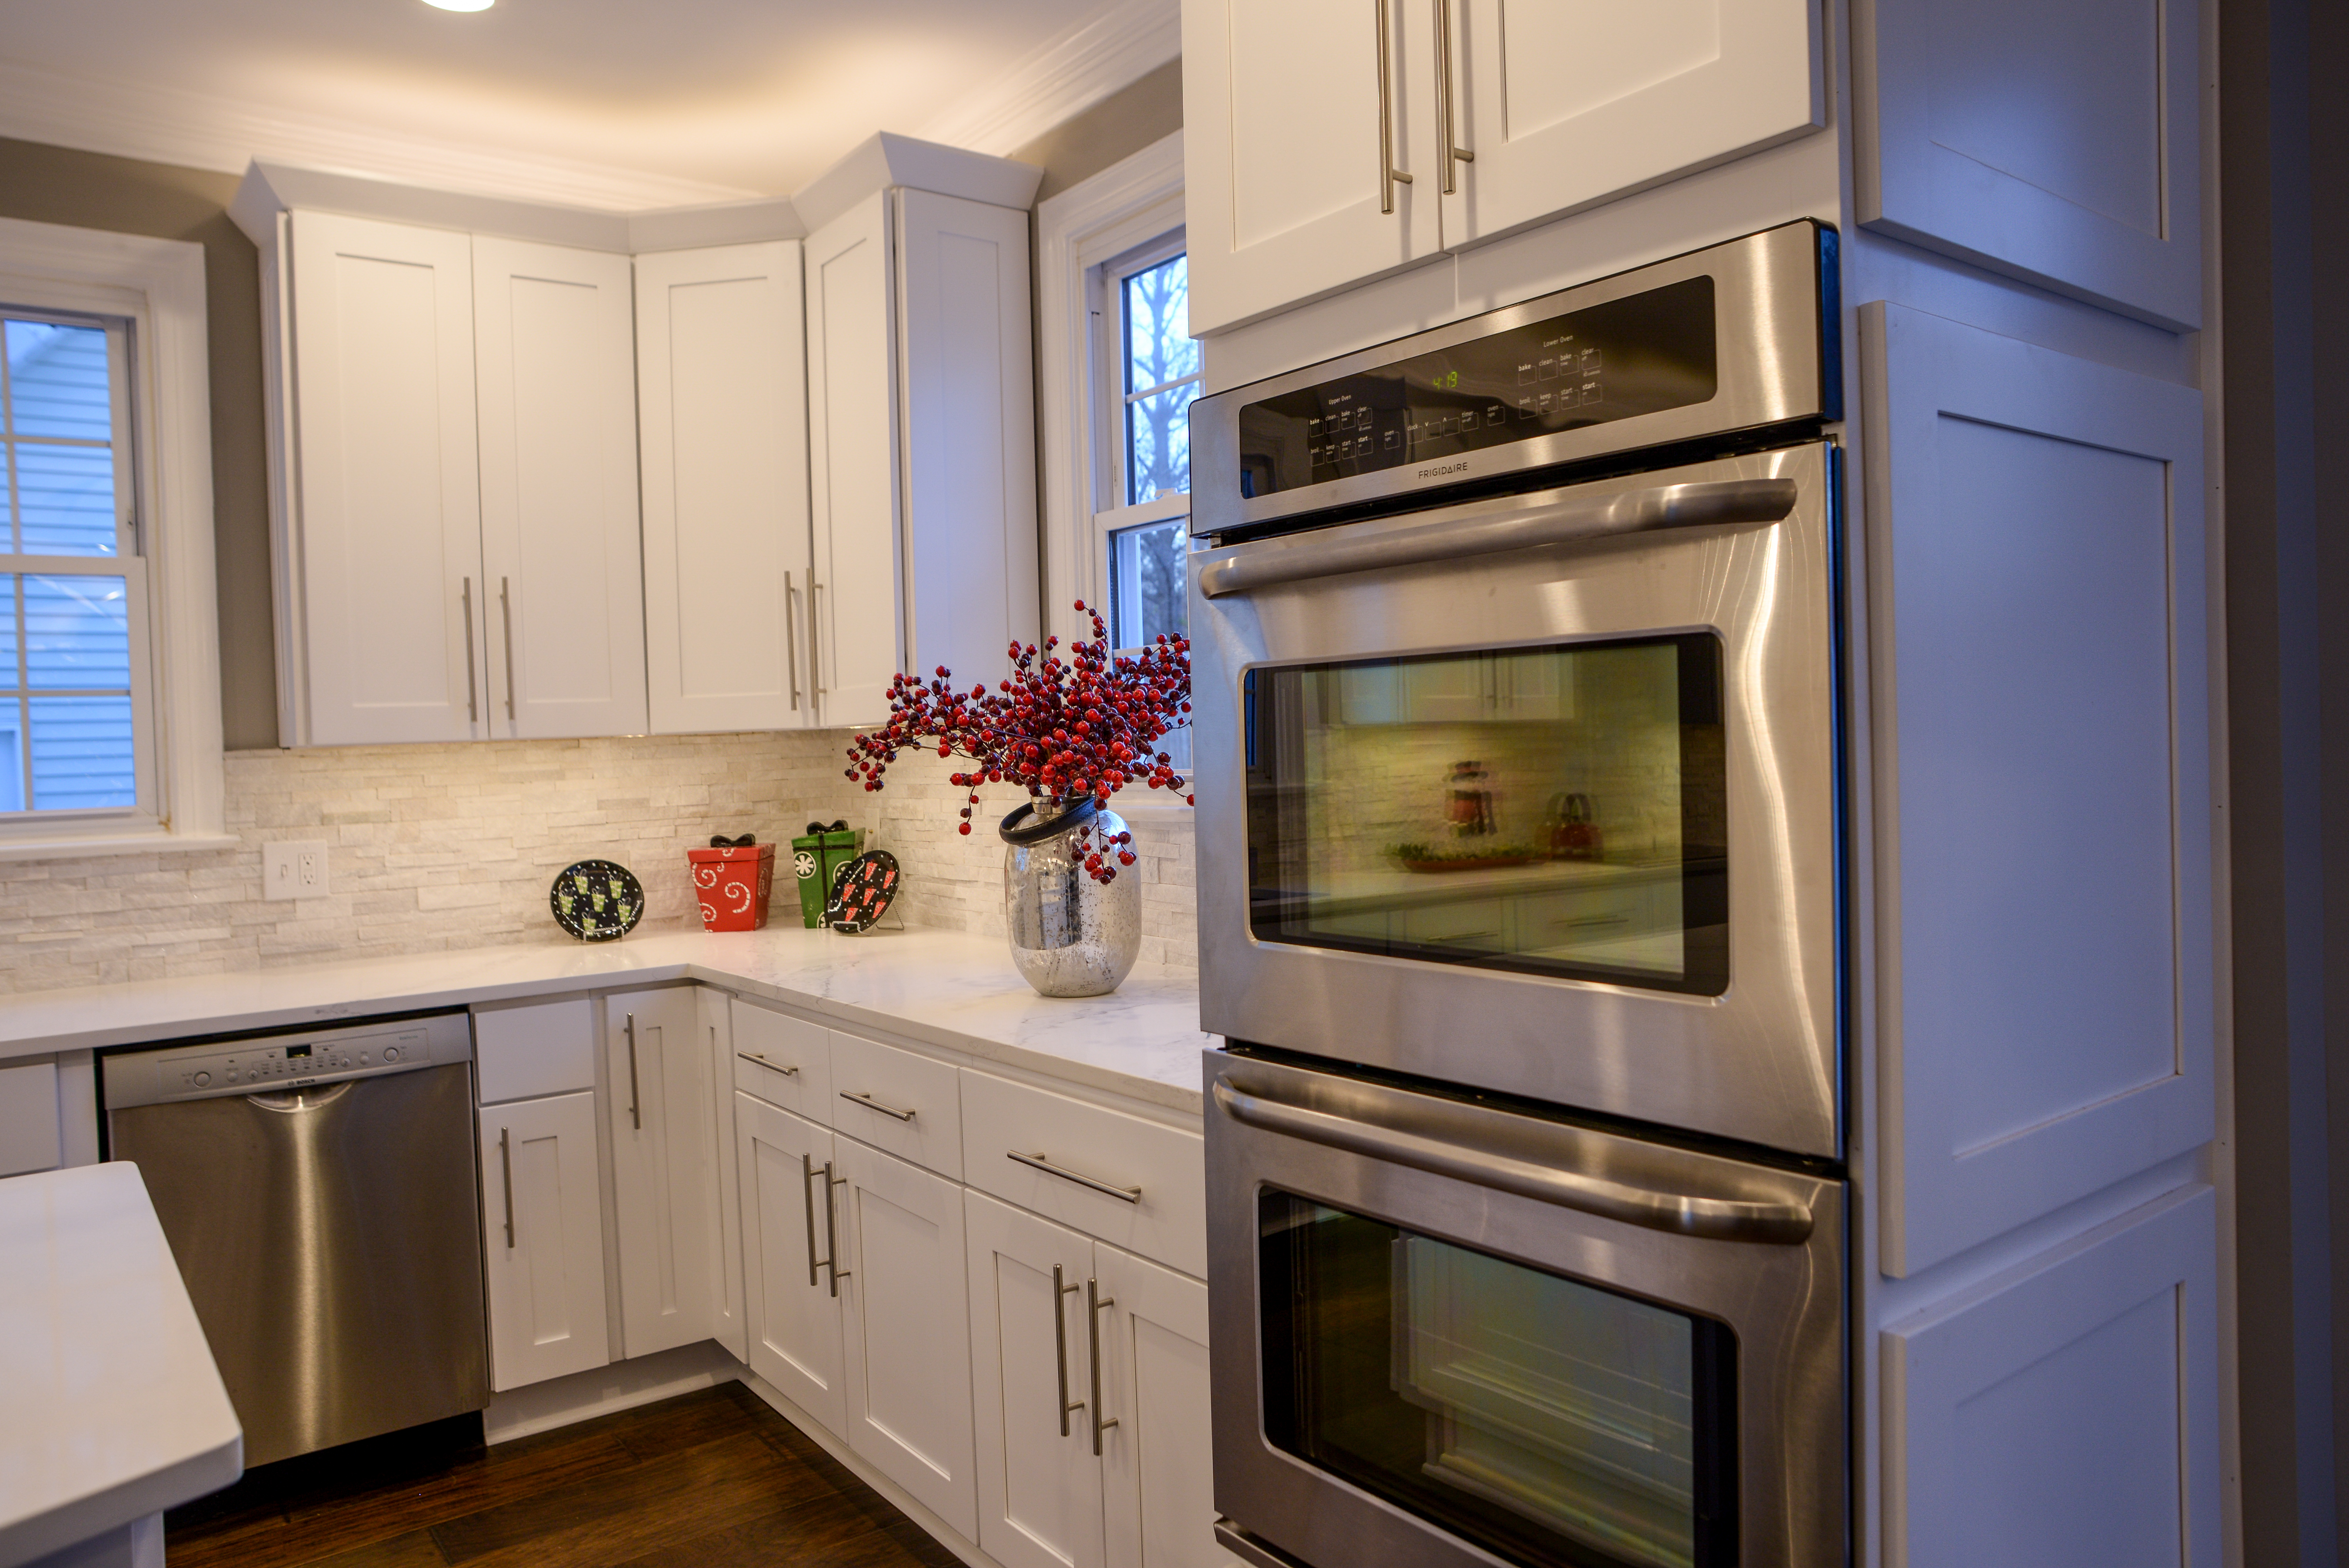 Home Remodeling & General Contractor